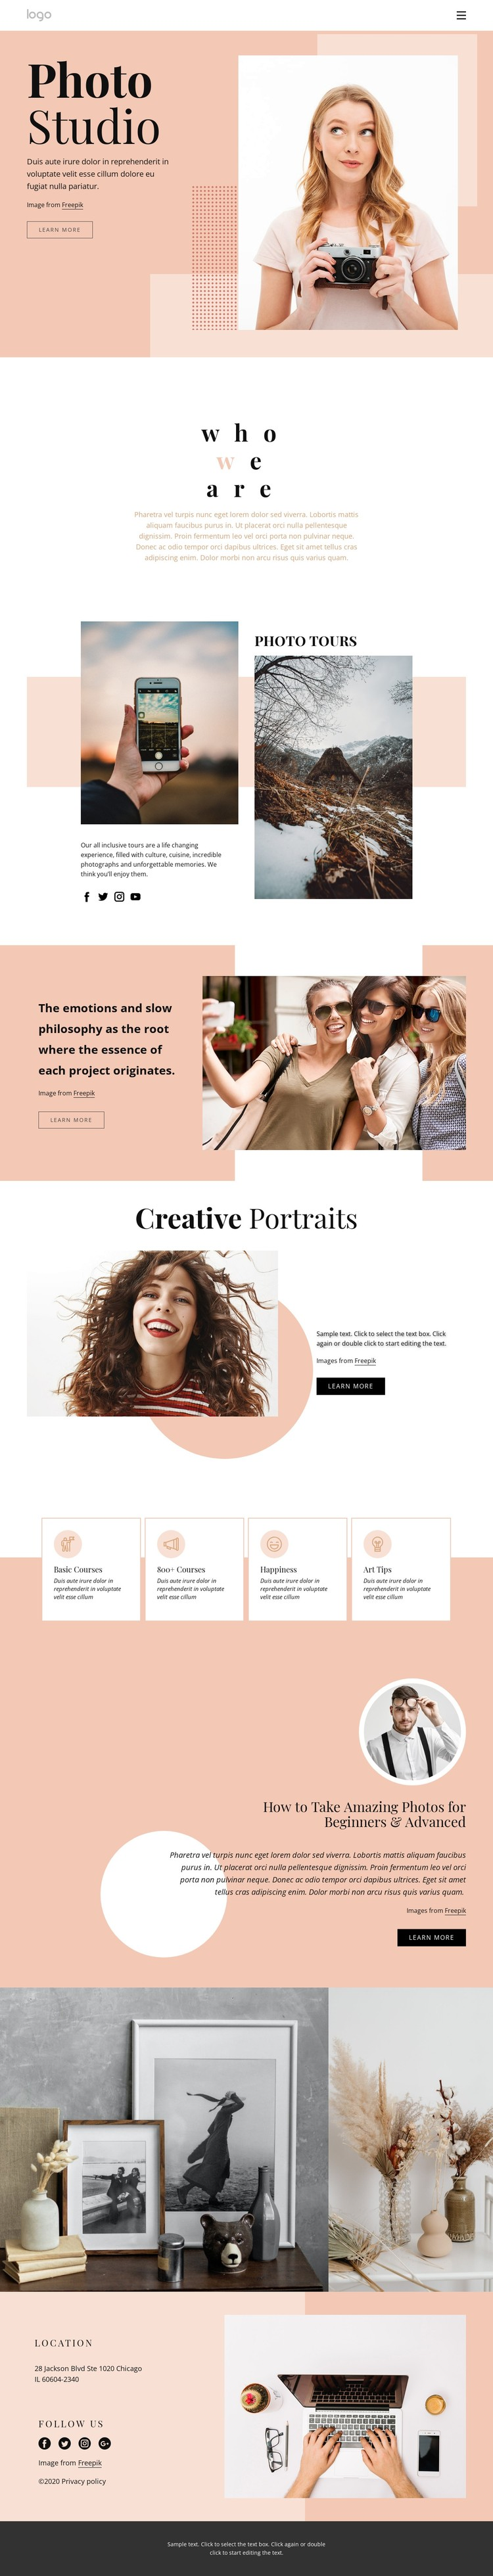 Photography courses Static Site Generator